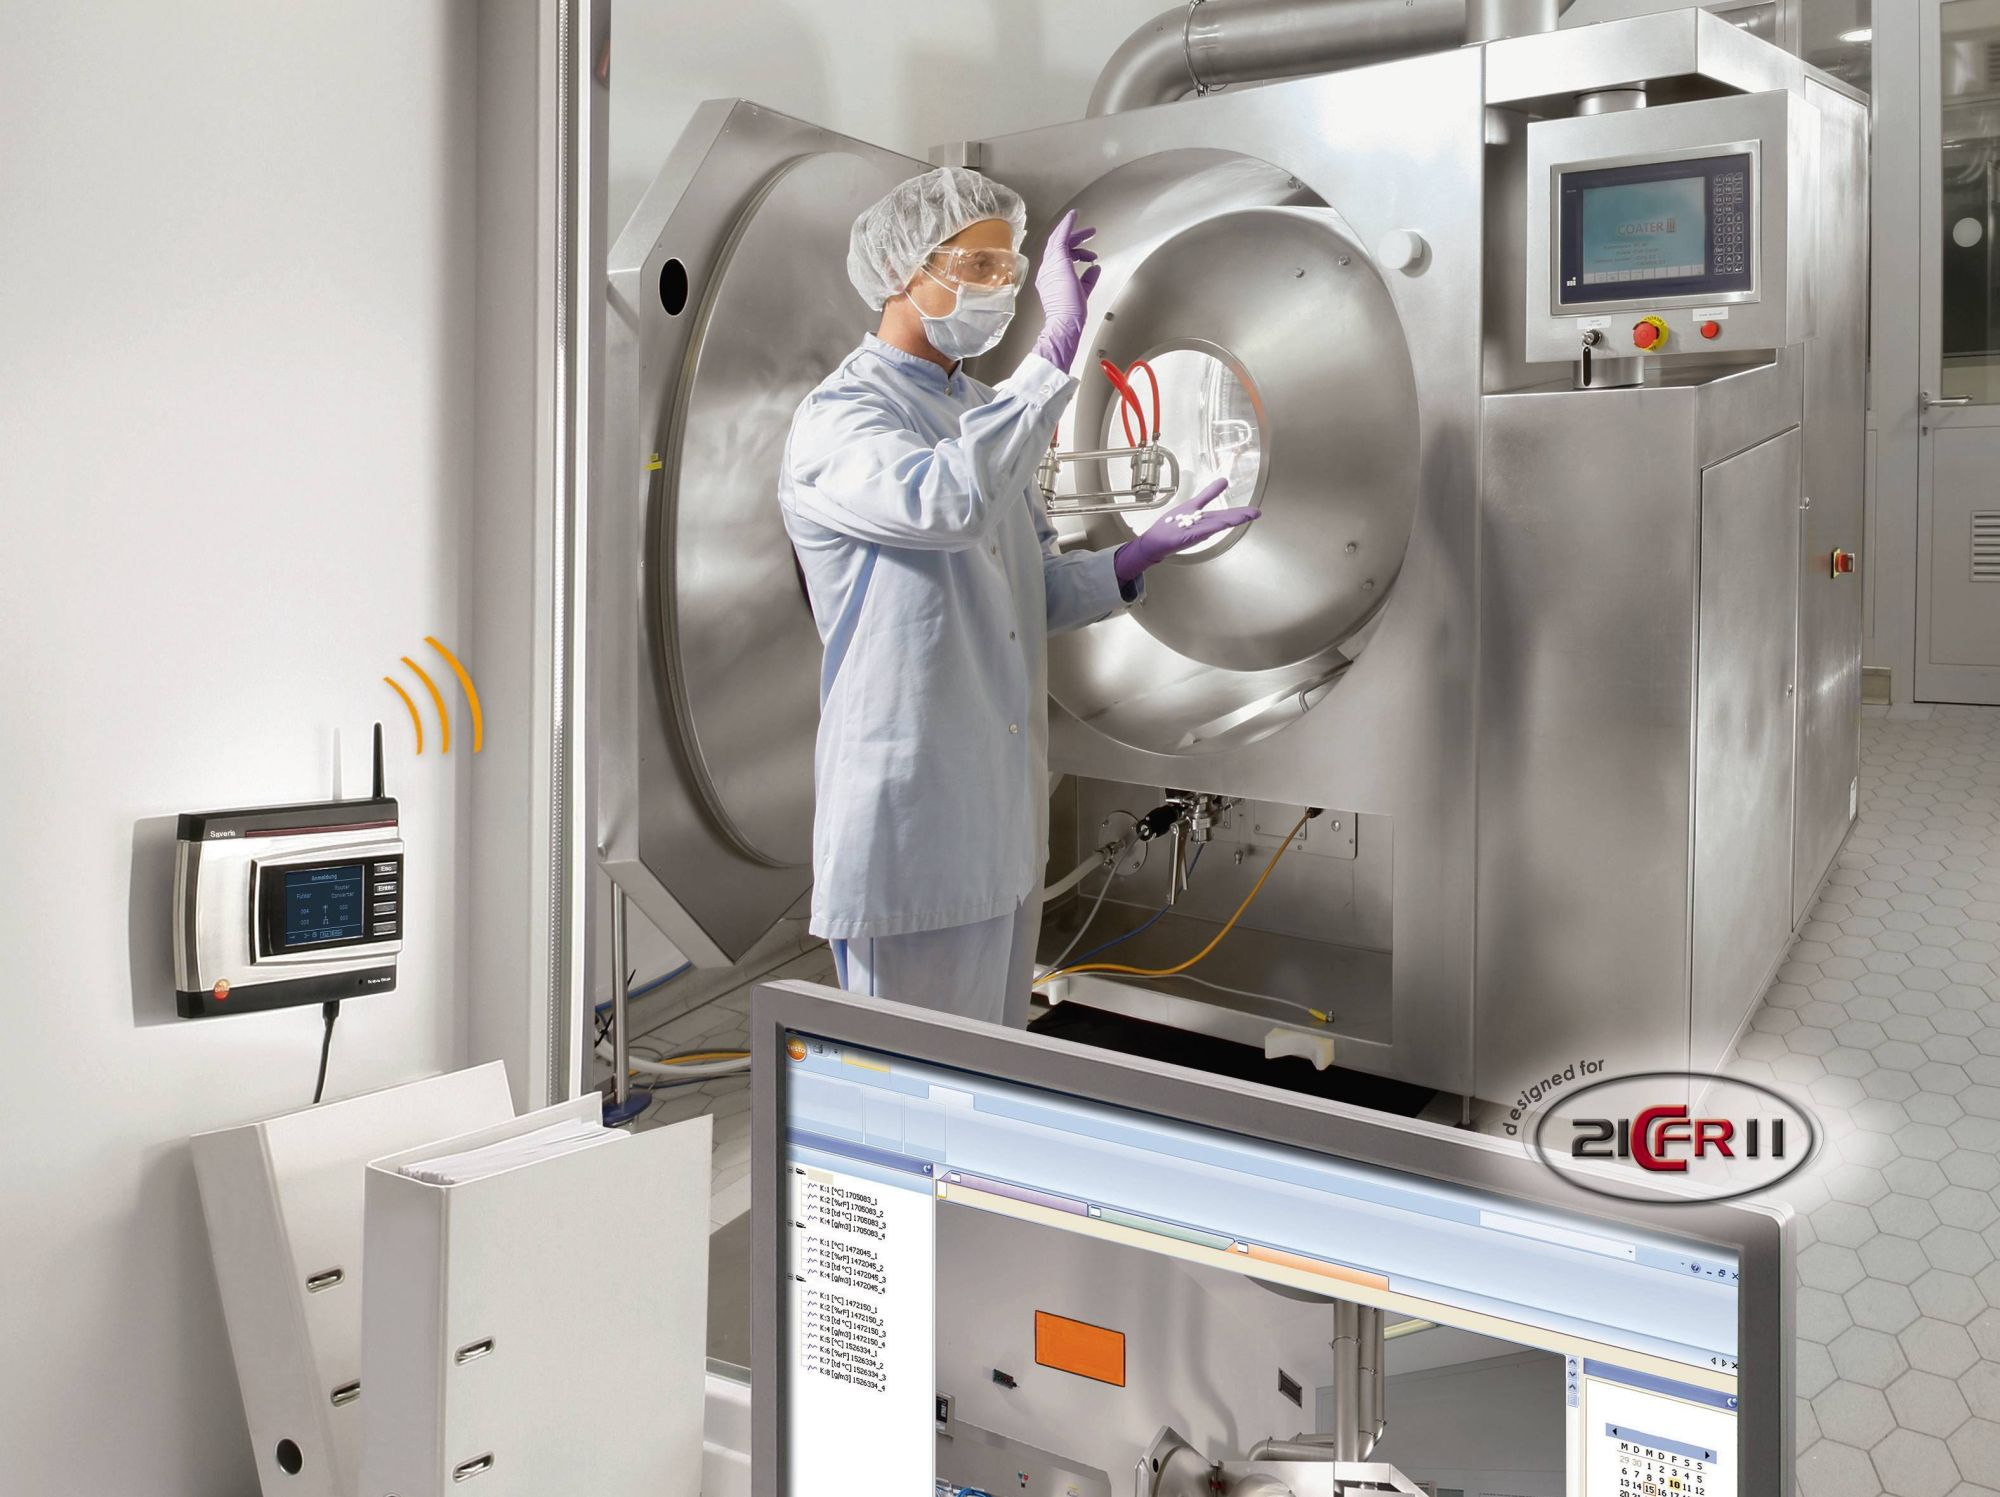 Data logger in the pharmaceutical industry